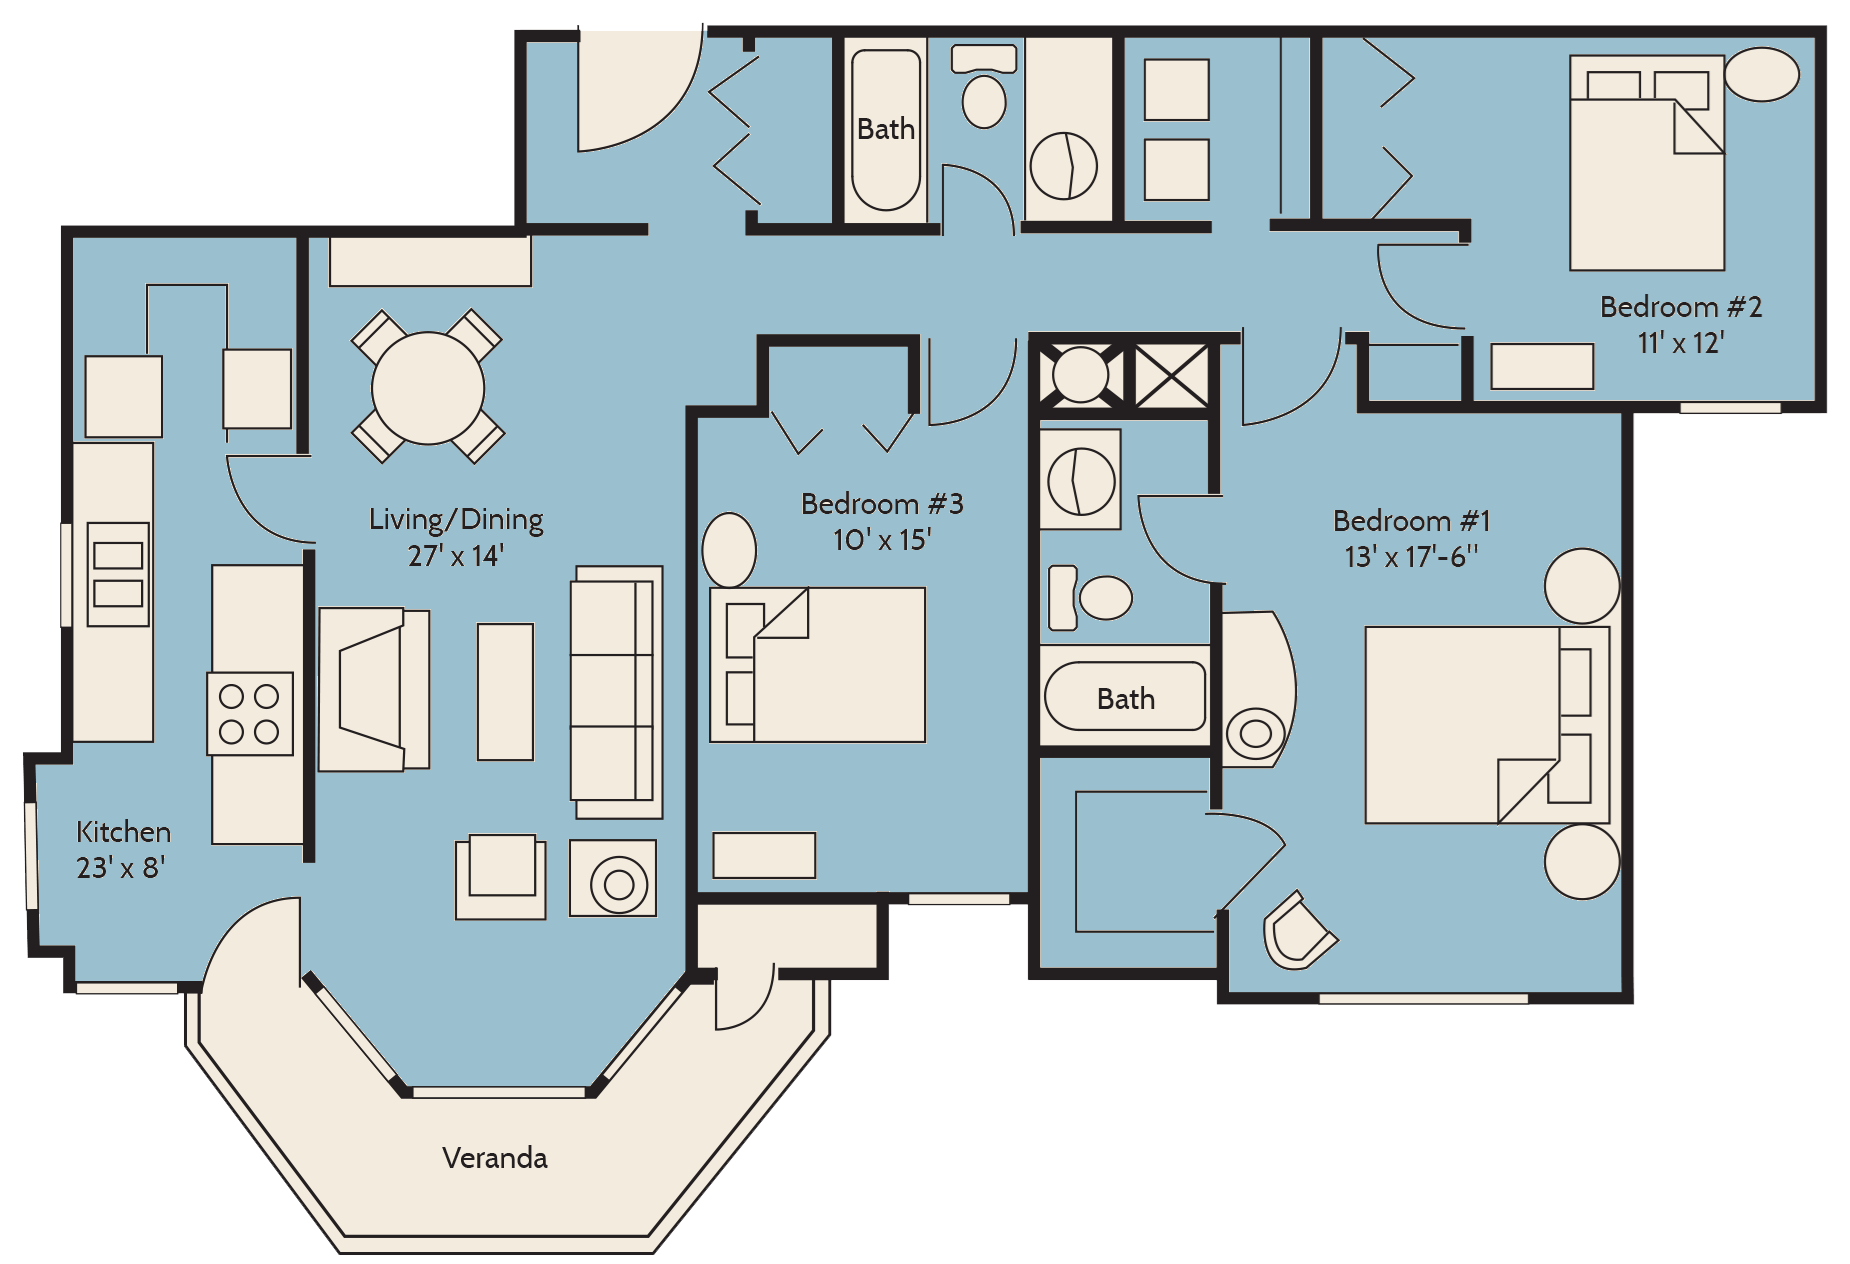 The Carolina Palm Floor Plan 15